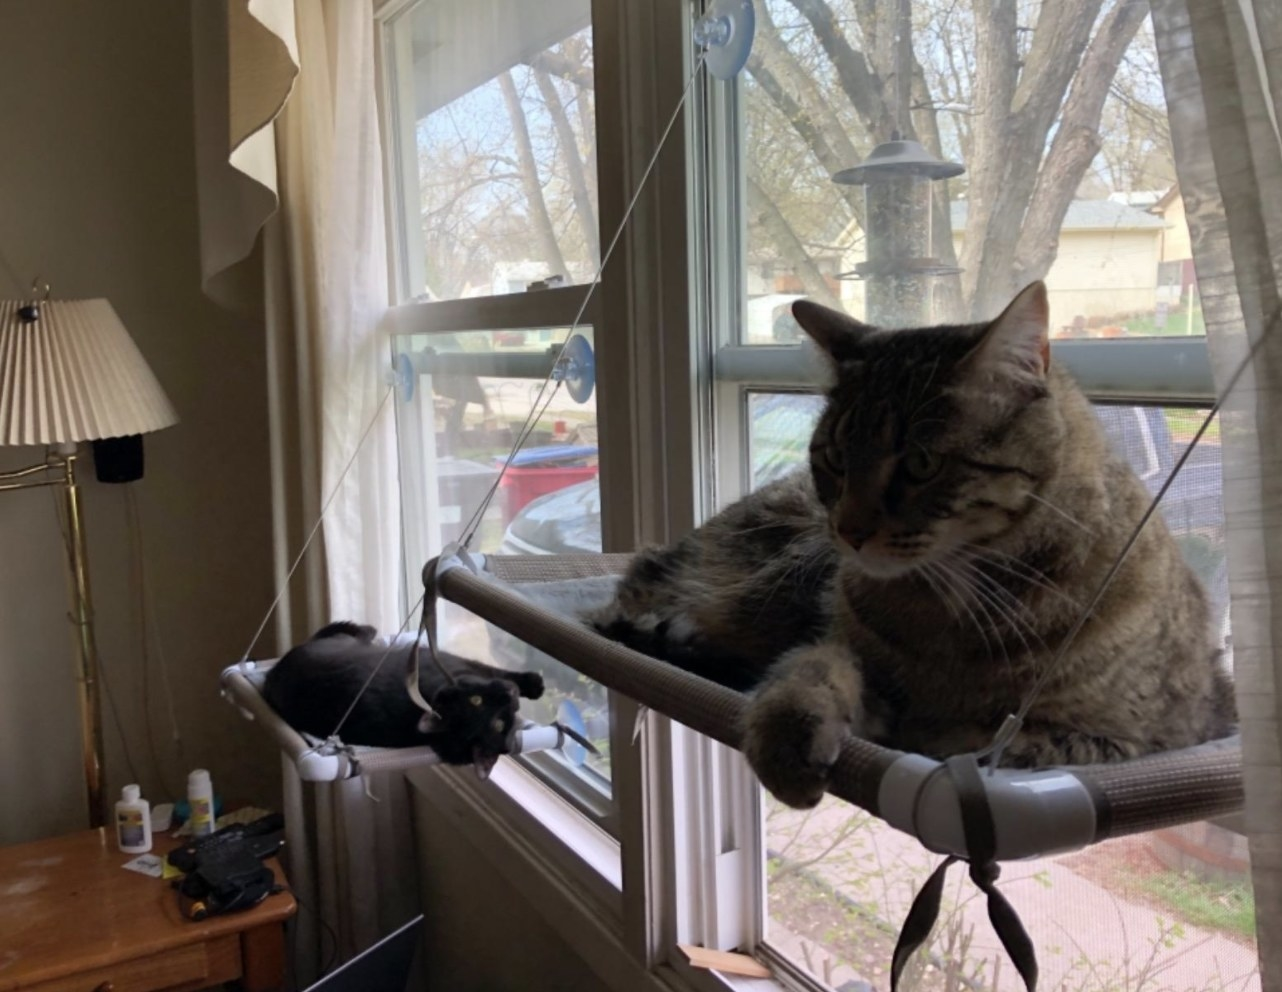 Two cats lounging on their own window hammocks